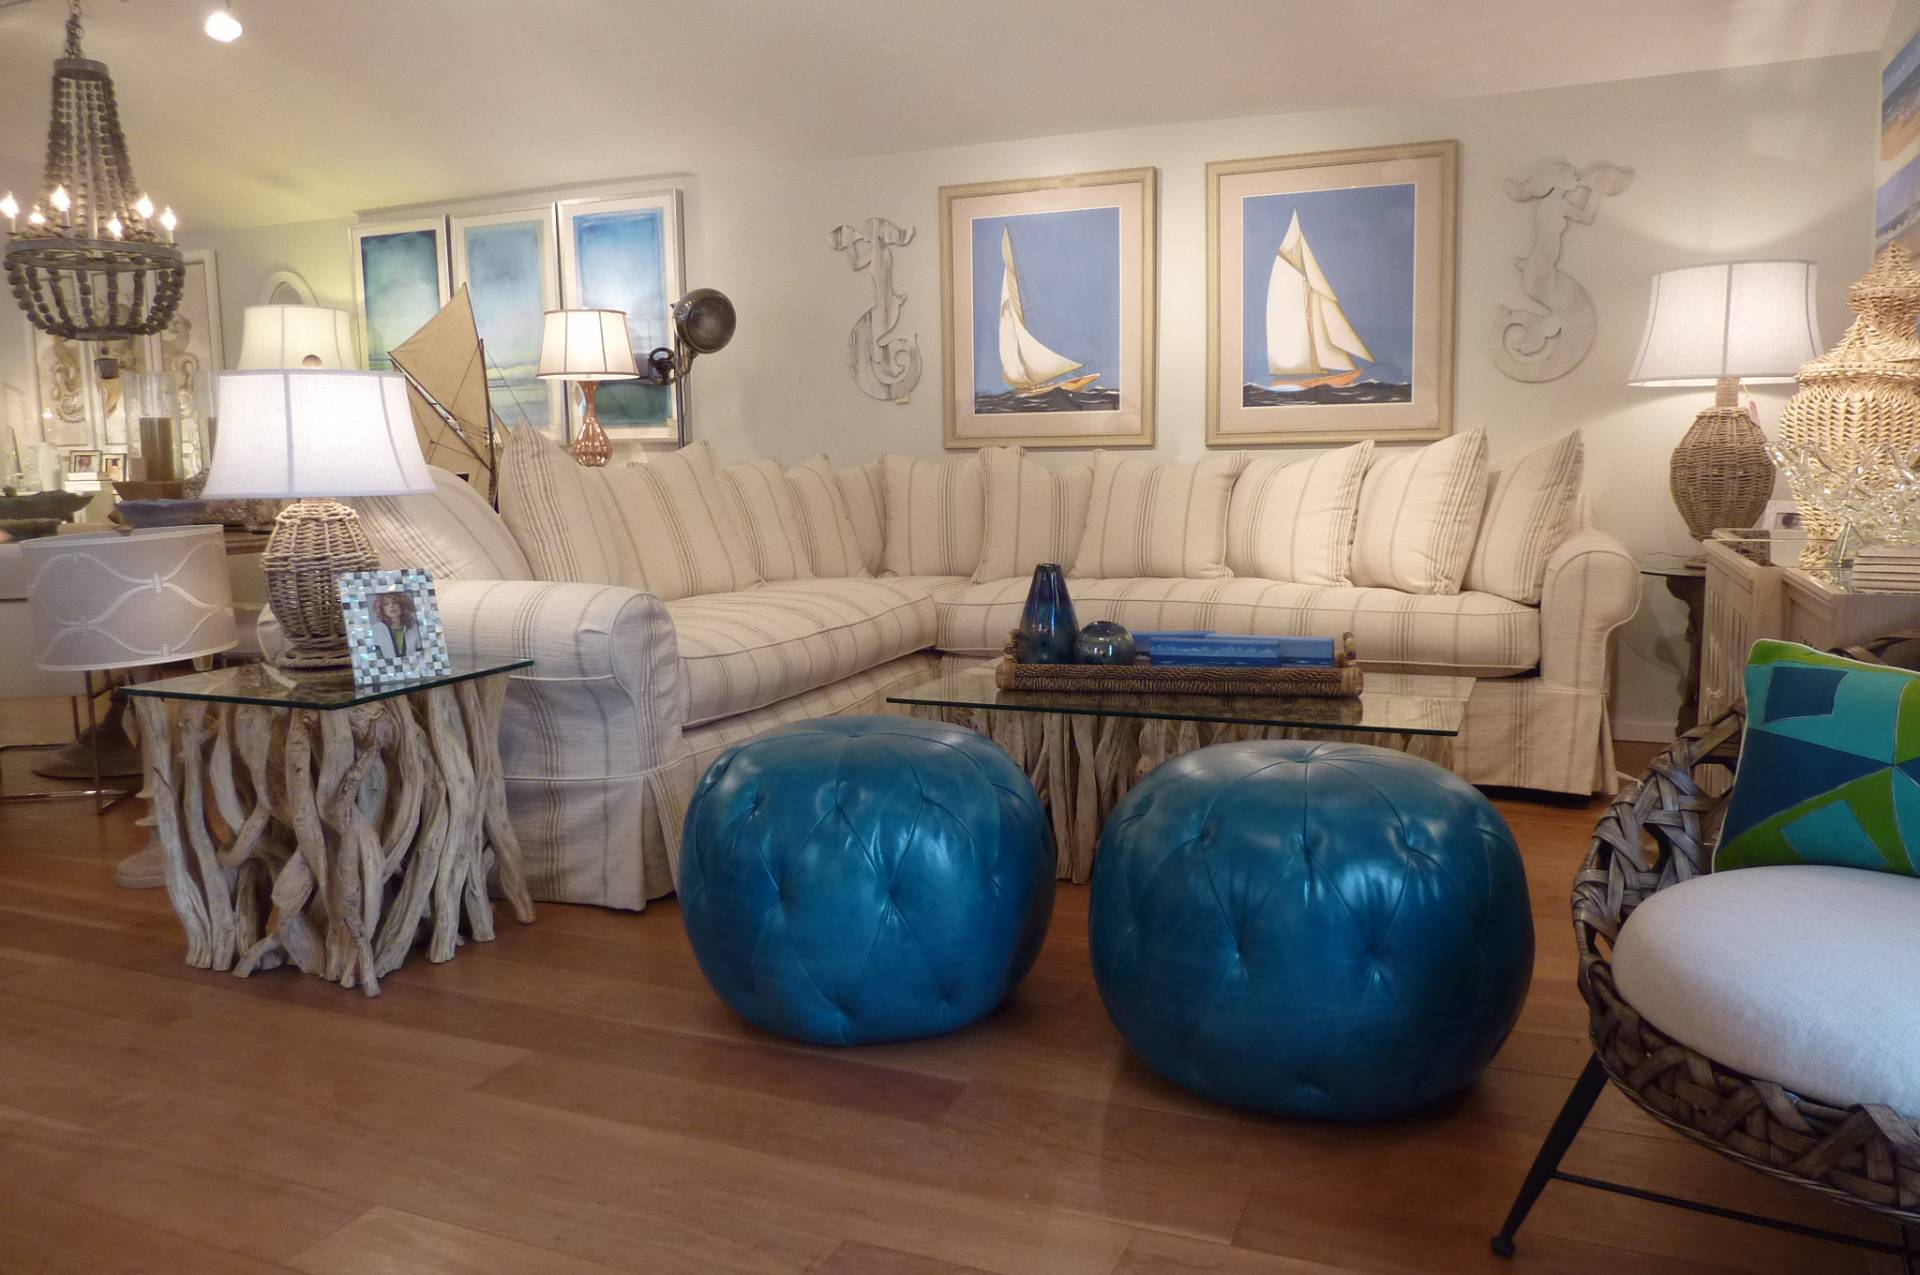 Sectional with Sailboats